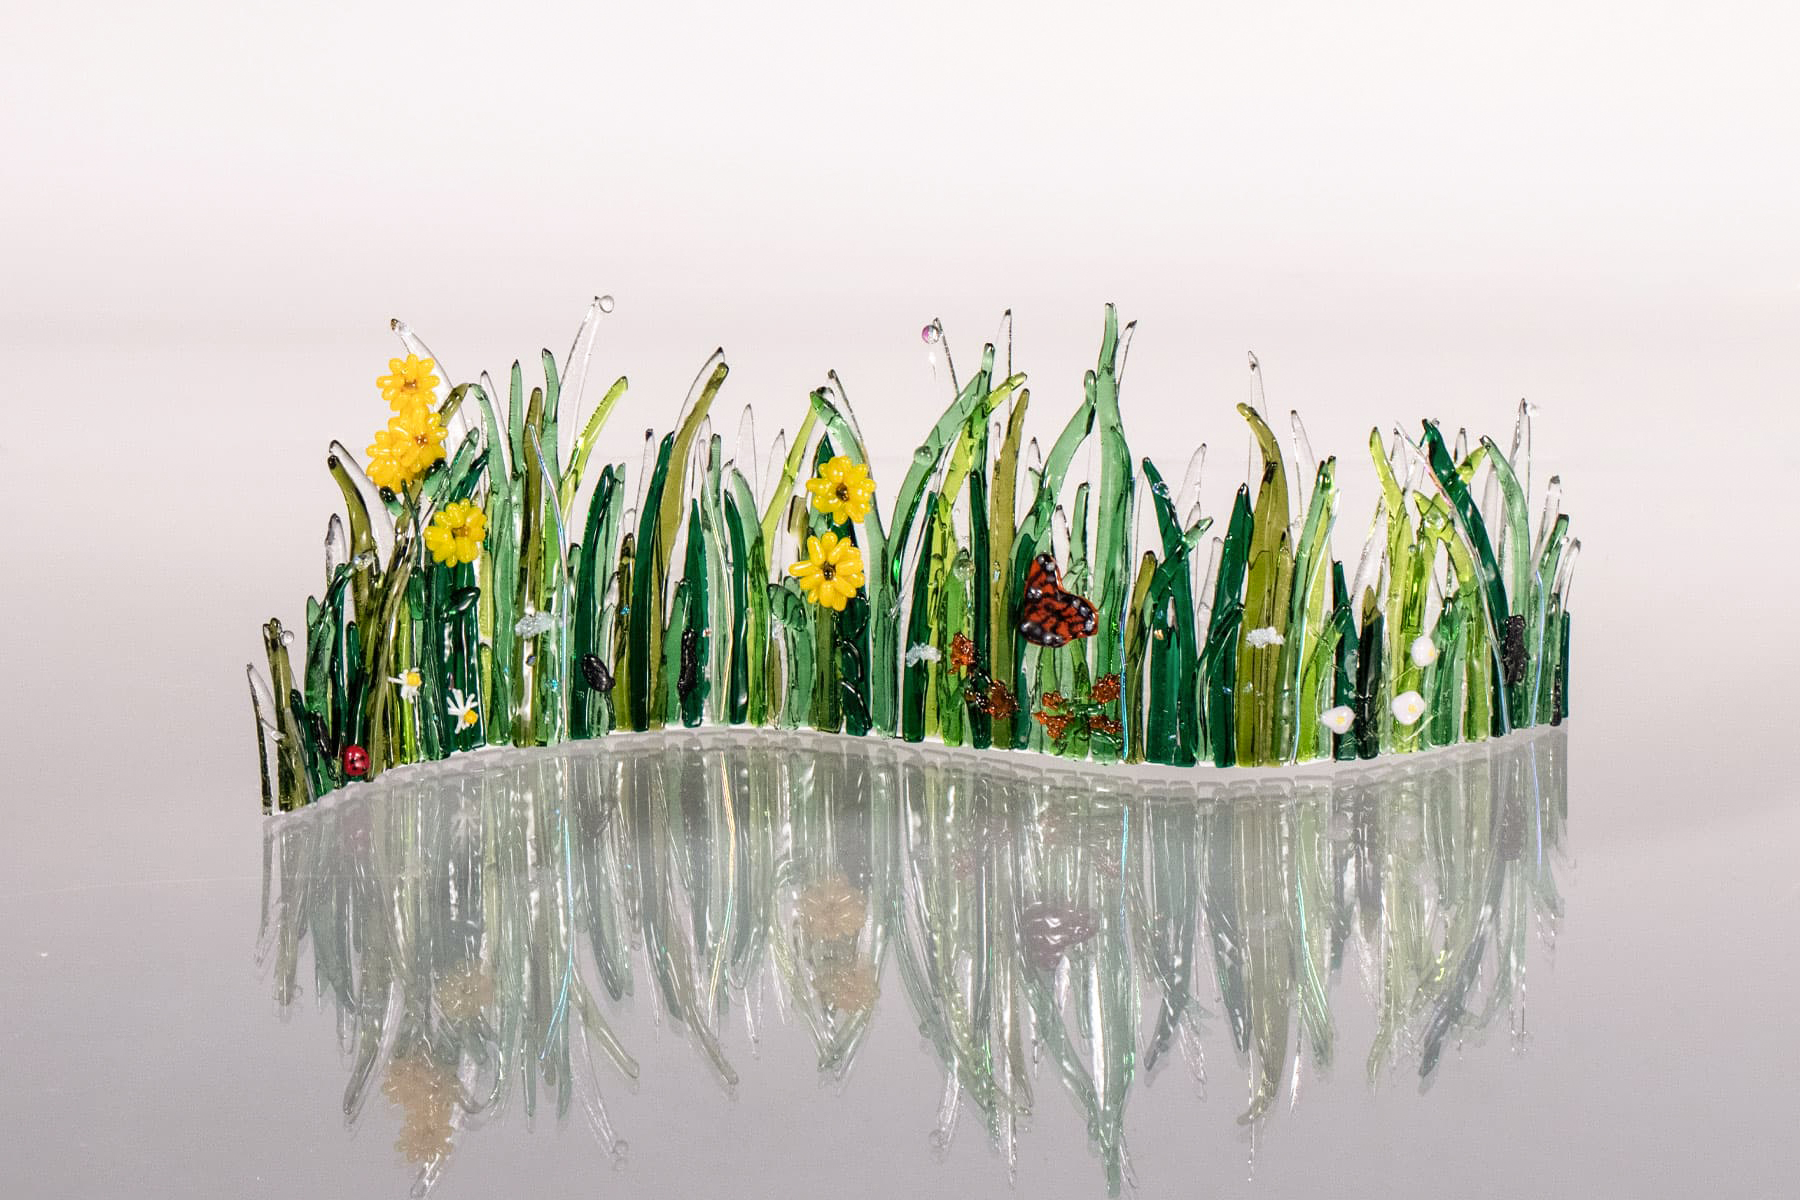 fused-glass-tabletop-curve-meadow-040121-4